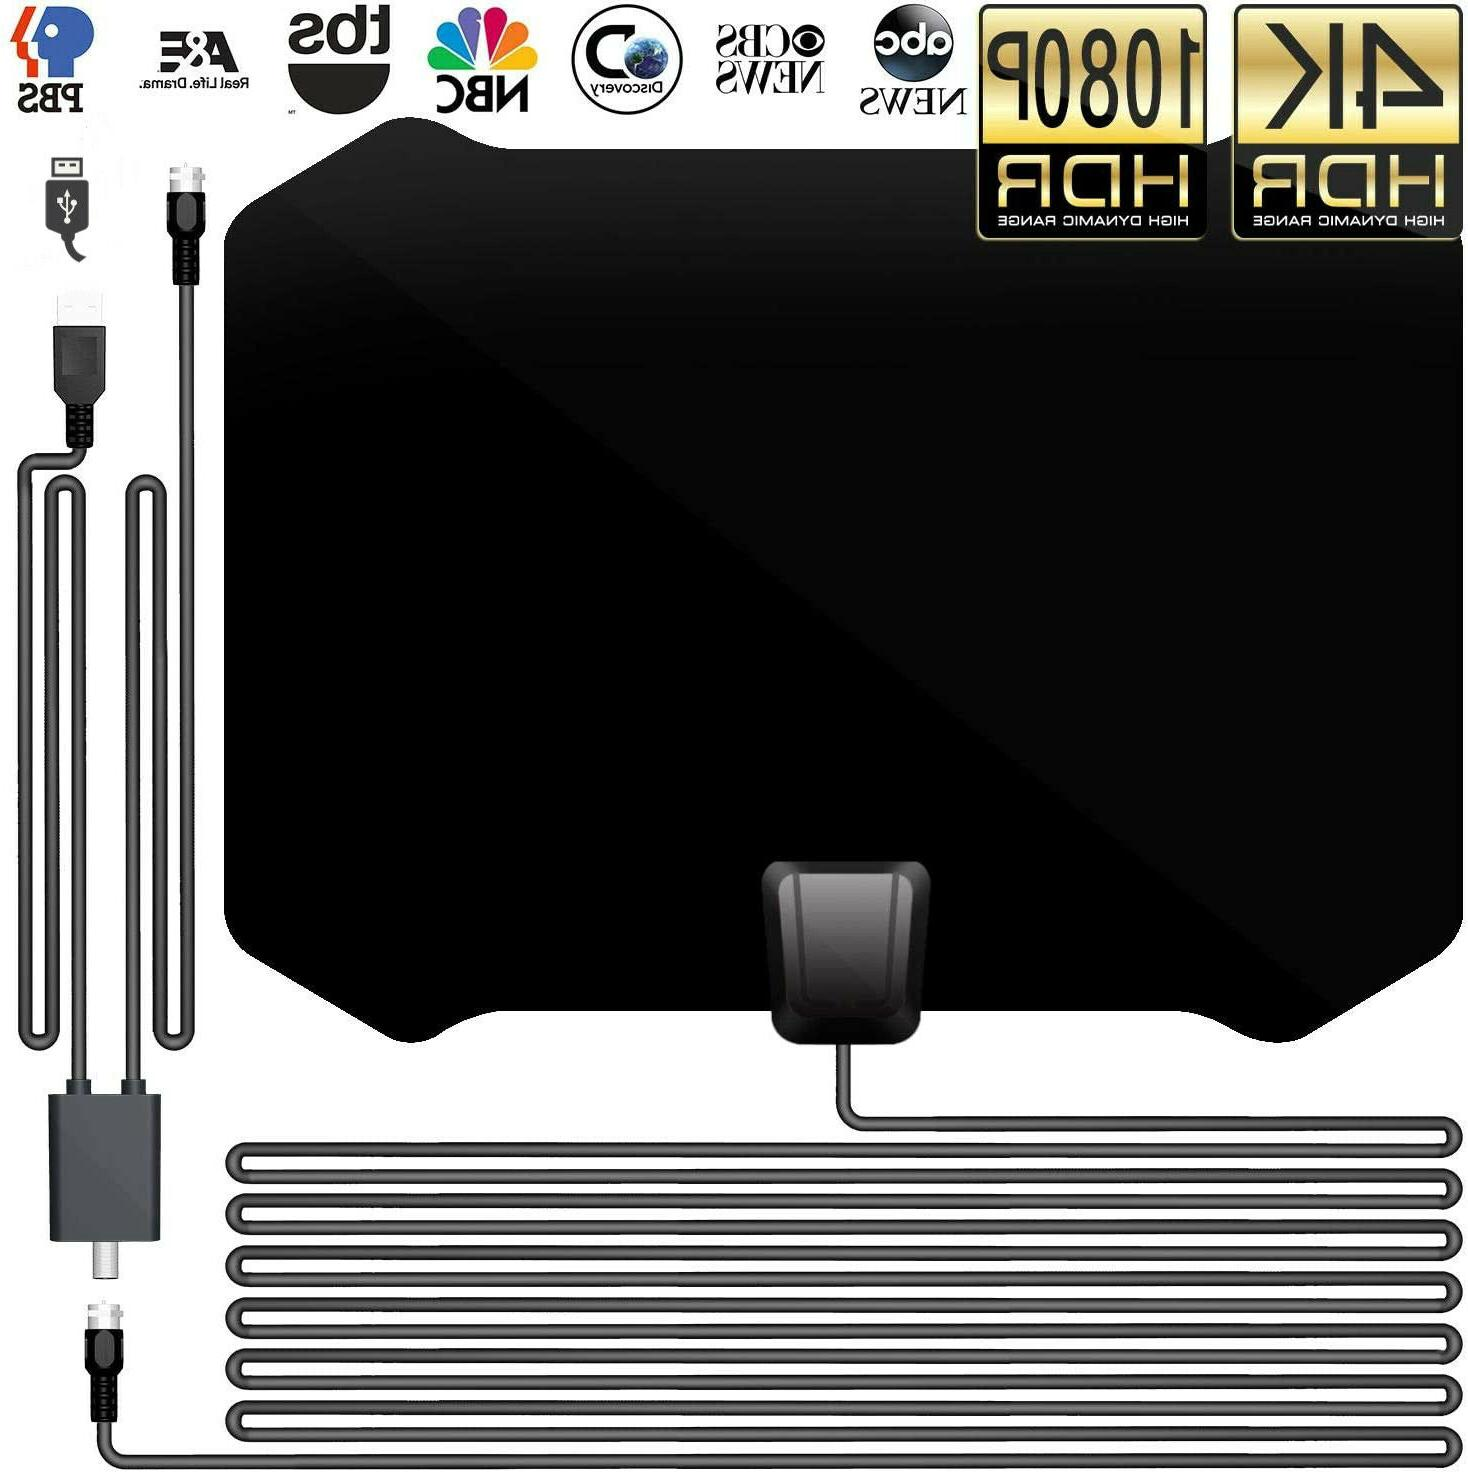 2020 new tv antenna with amplifier free